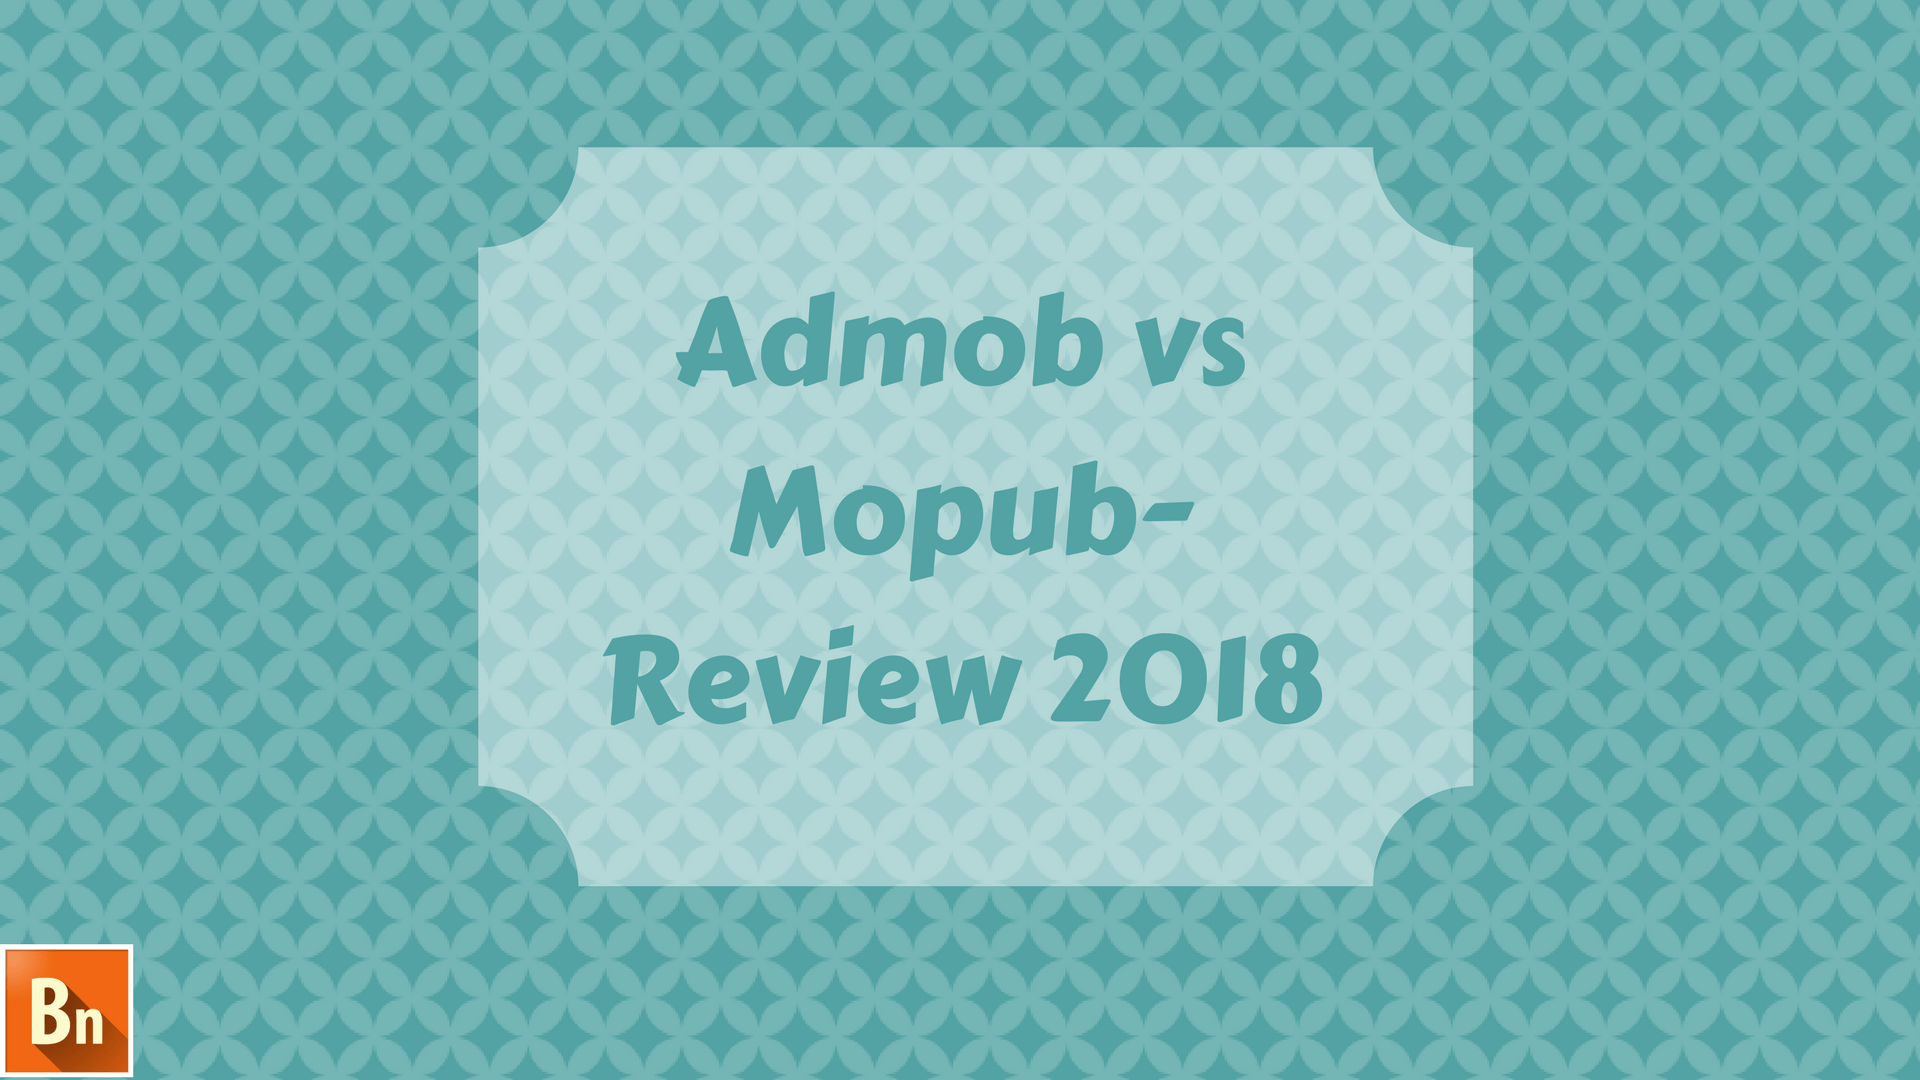 Admob vs Mopub- Review 2019